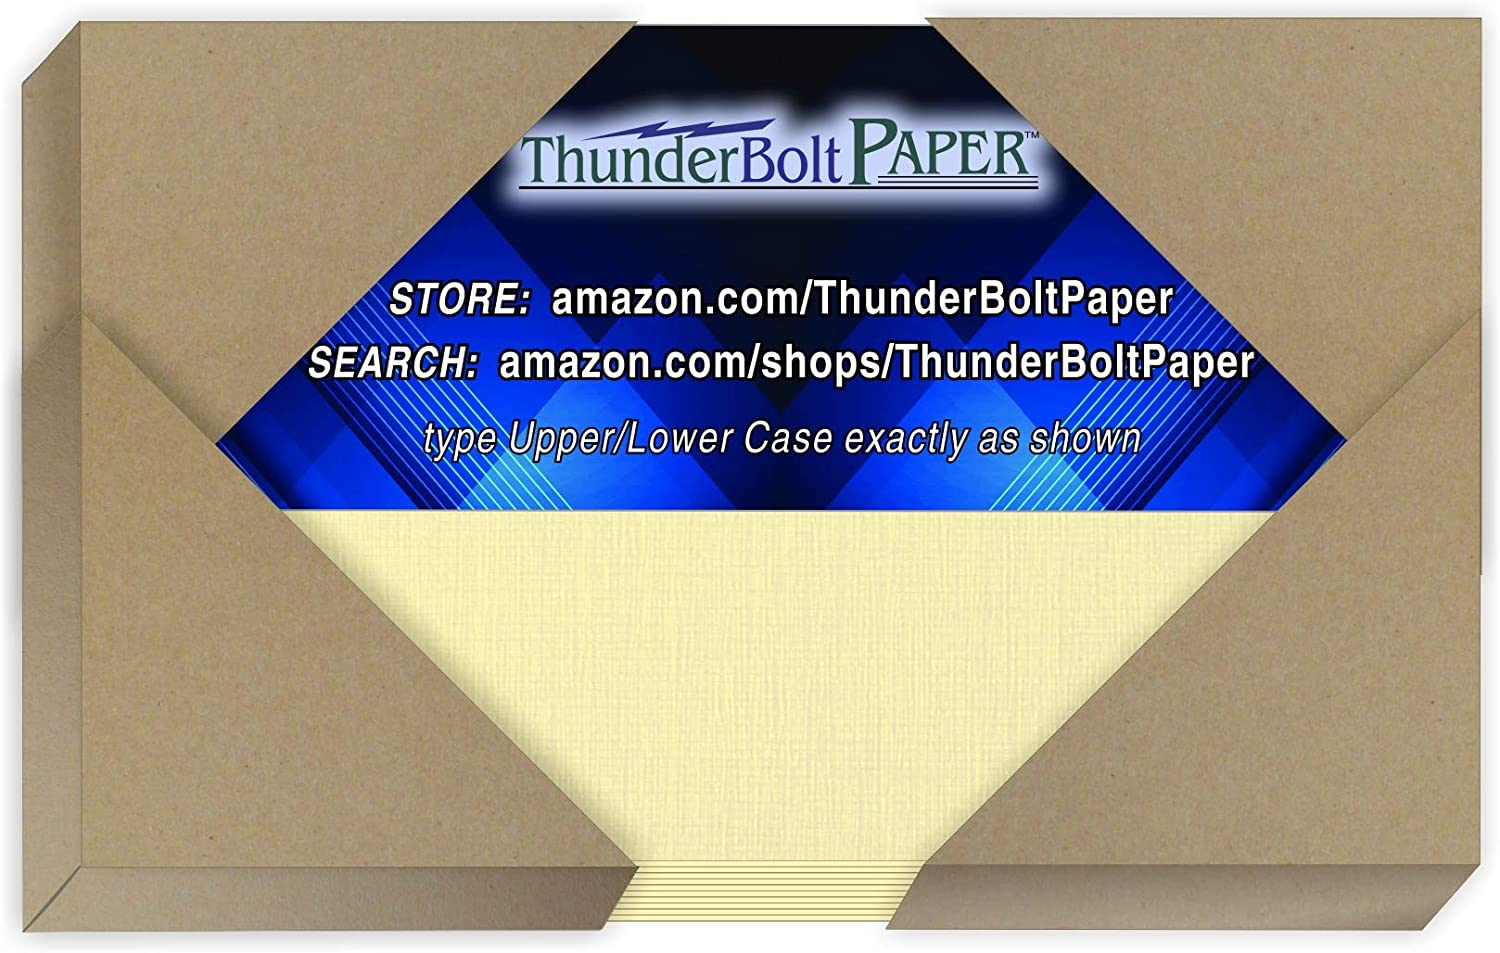 80 lb//Pound Card Weight Quality Cardstock 8.5X11 Inches 50 Ivory Linen 80# Cover Paper Sheets 8.5 X 11 Standard Letter Flyer Size Fine Linen Textured Finish